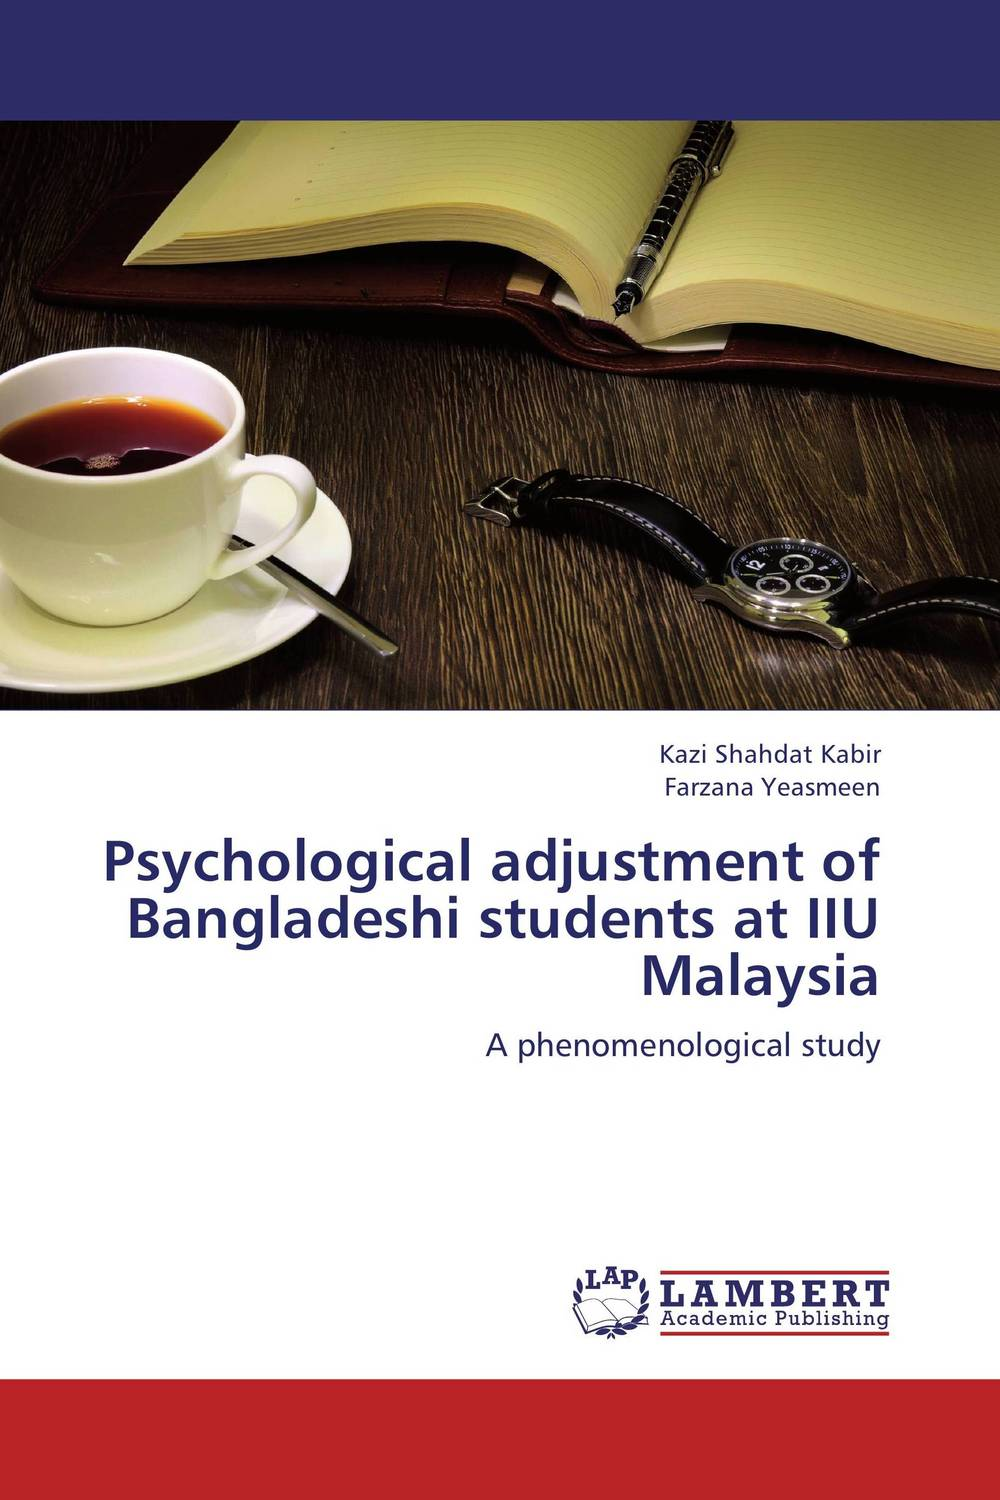 Psychological adjustment of Bangladeshi students at IIU Malaysia point systems migration policy and international students flow